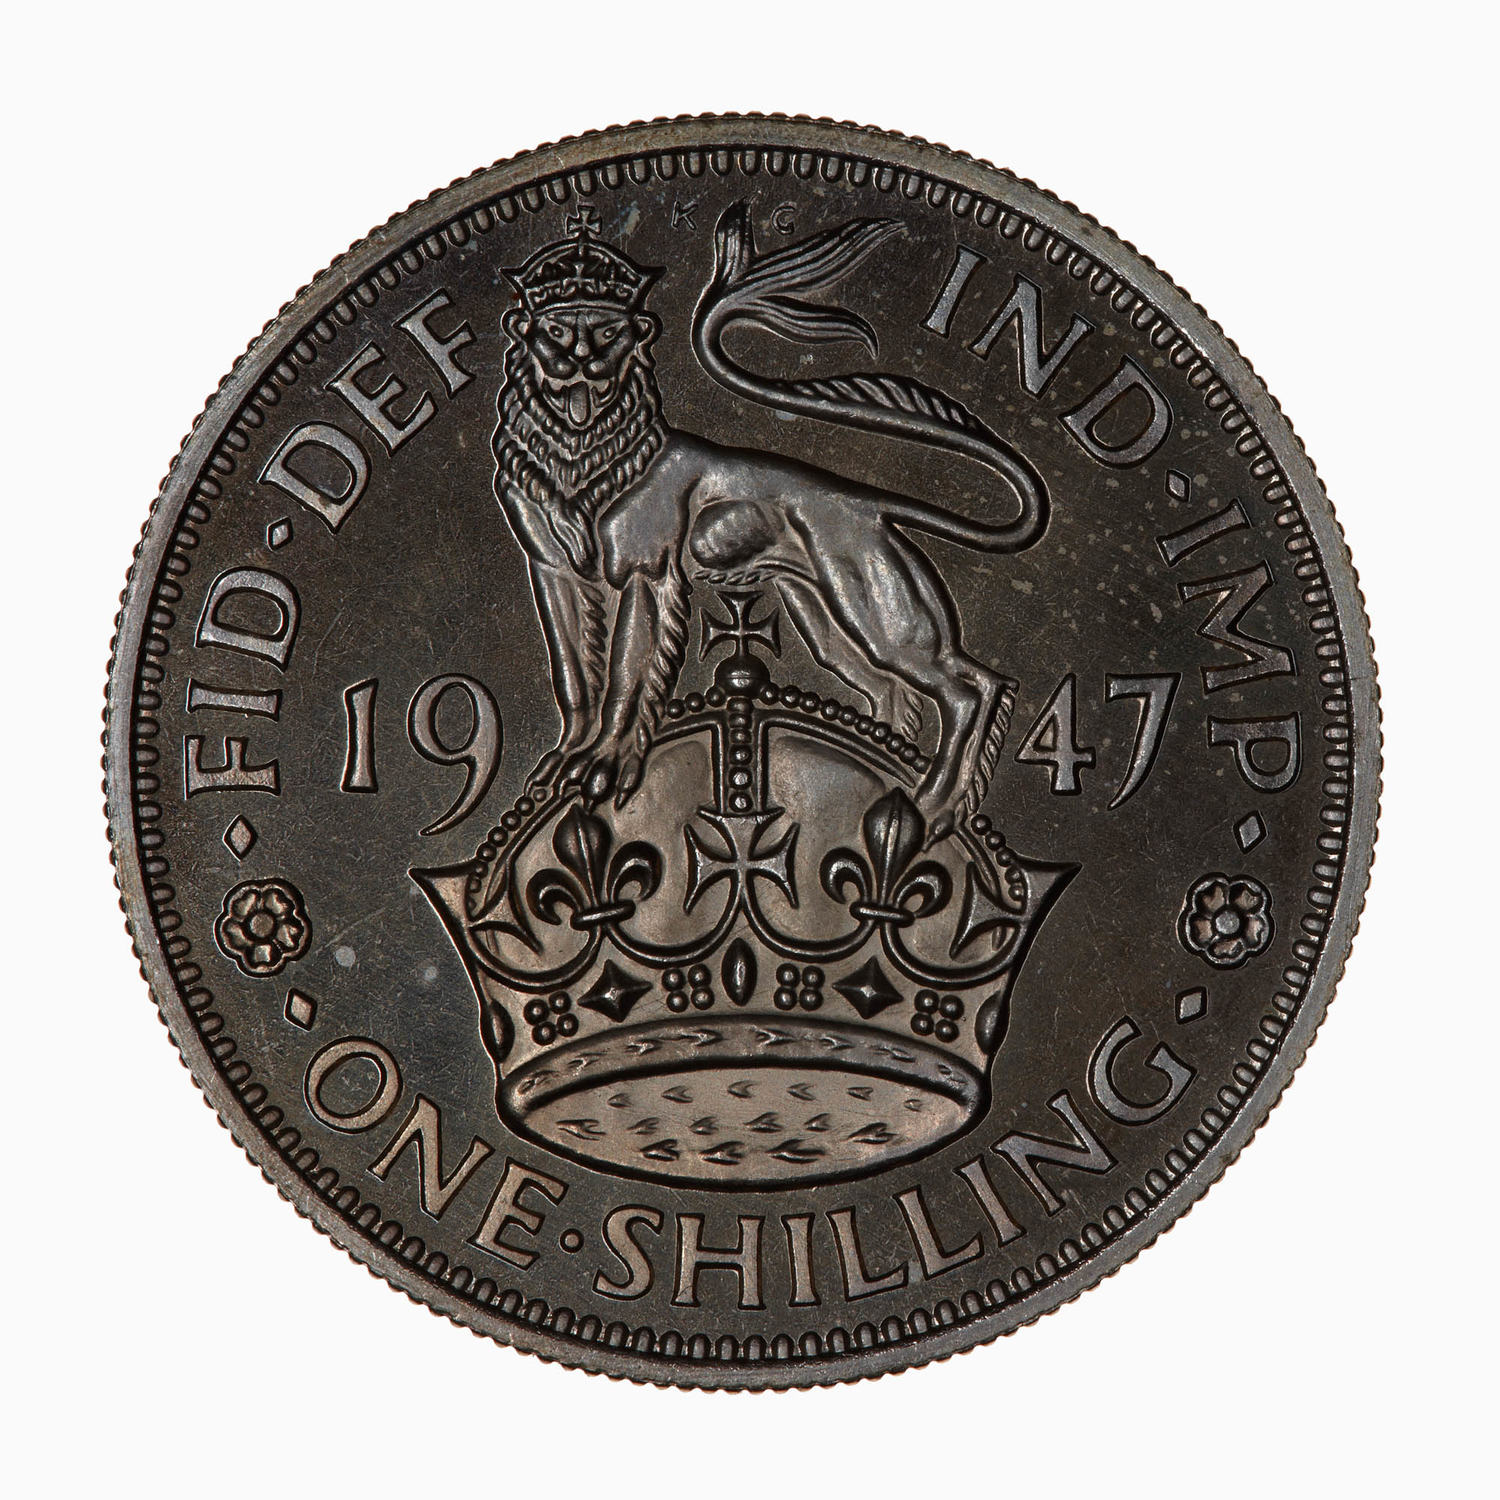 Shilling: Photo Proof Coin - Shilling, George VI, Great Britain, 1947